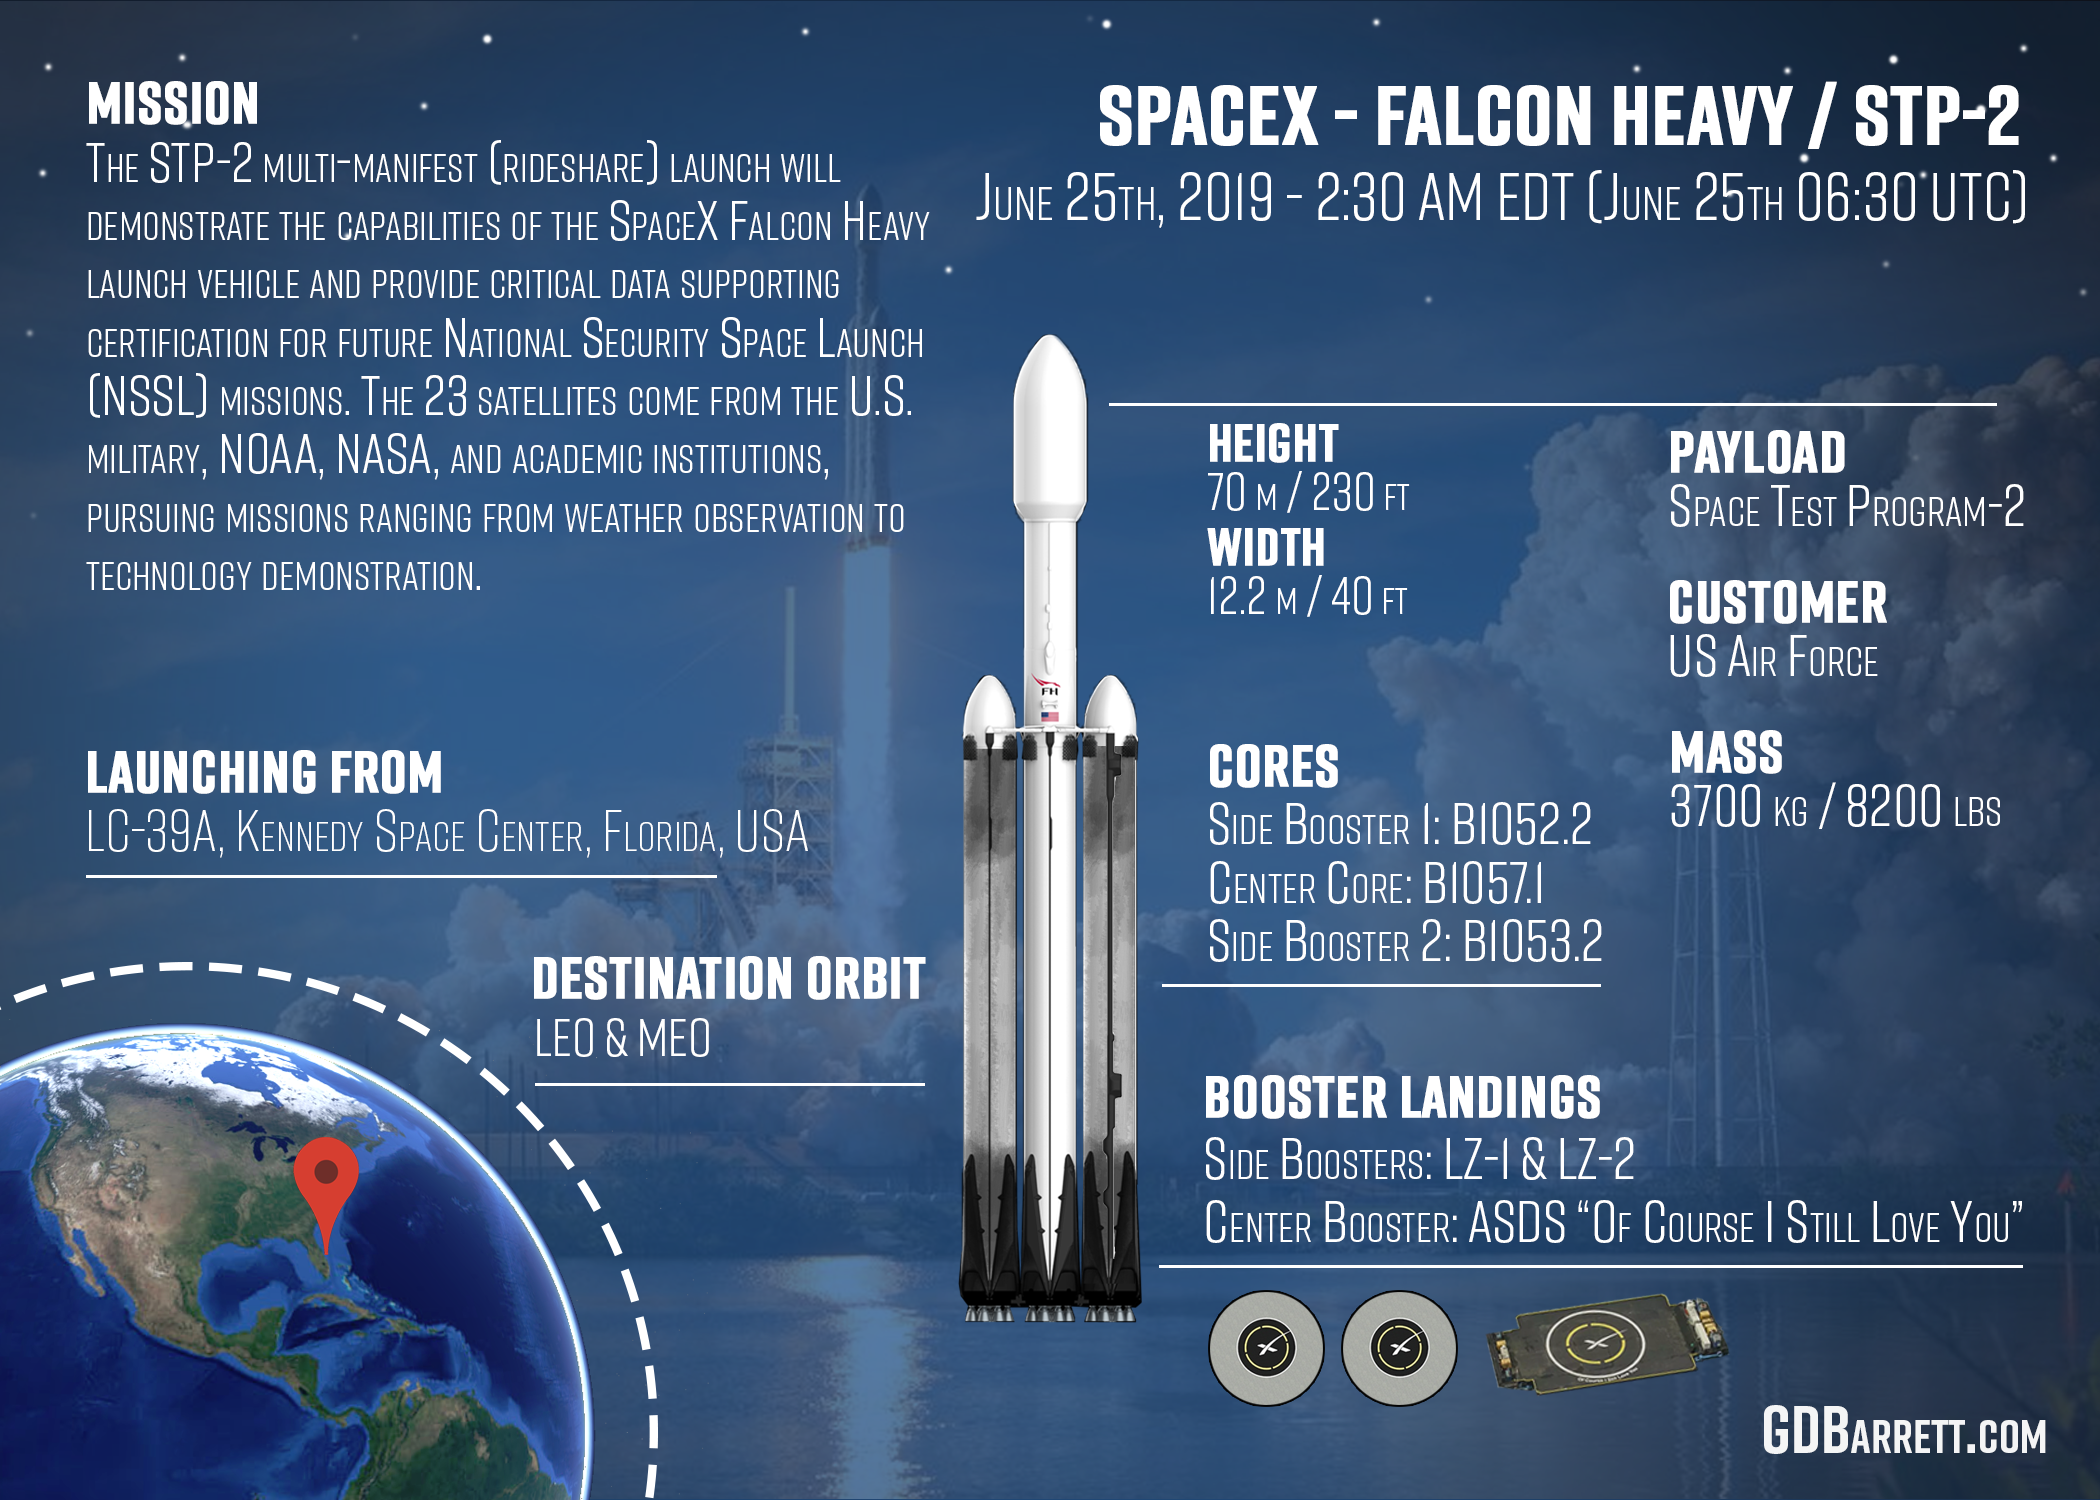 SpaceX Falcon Heavy - STP-2